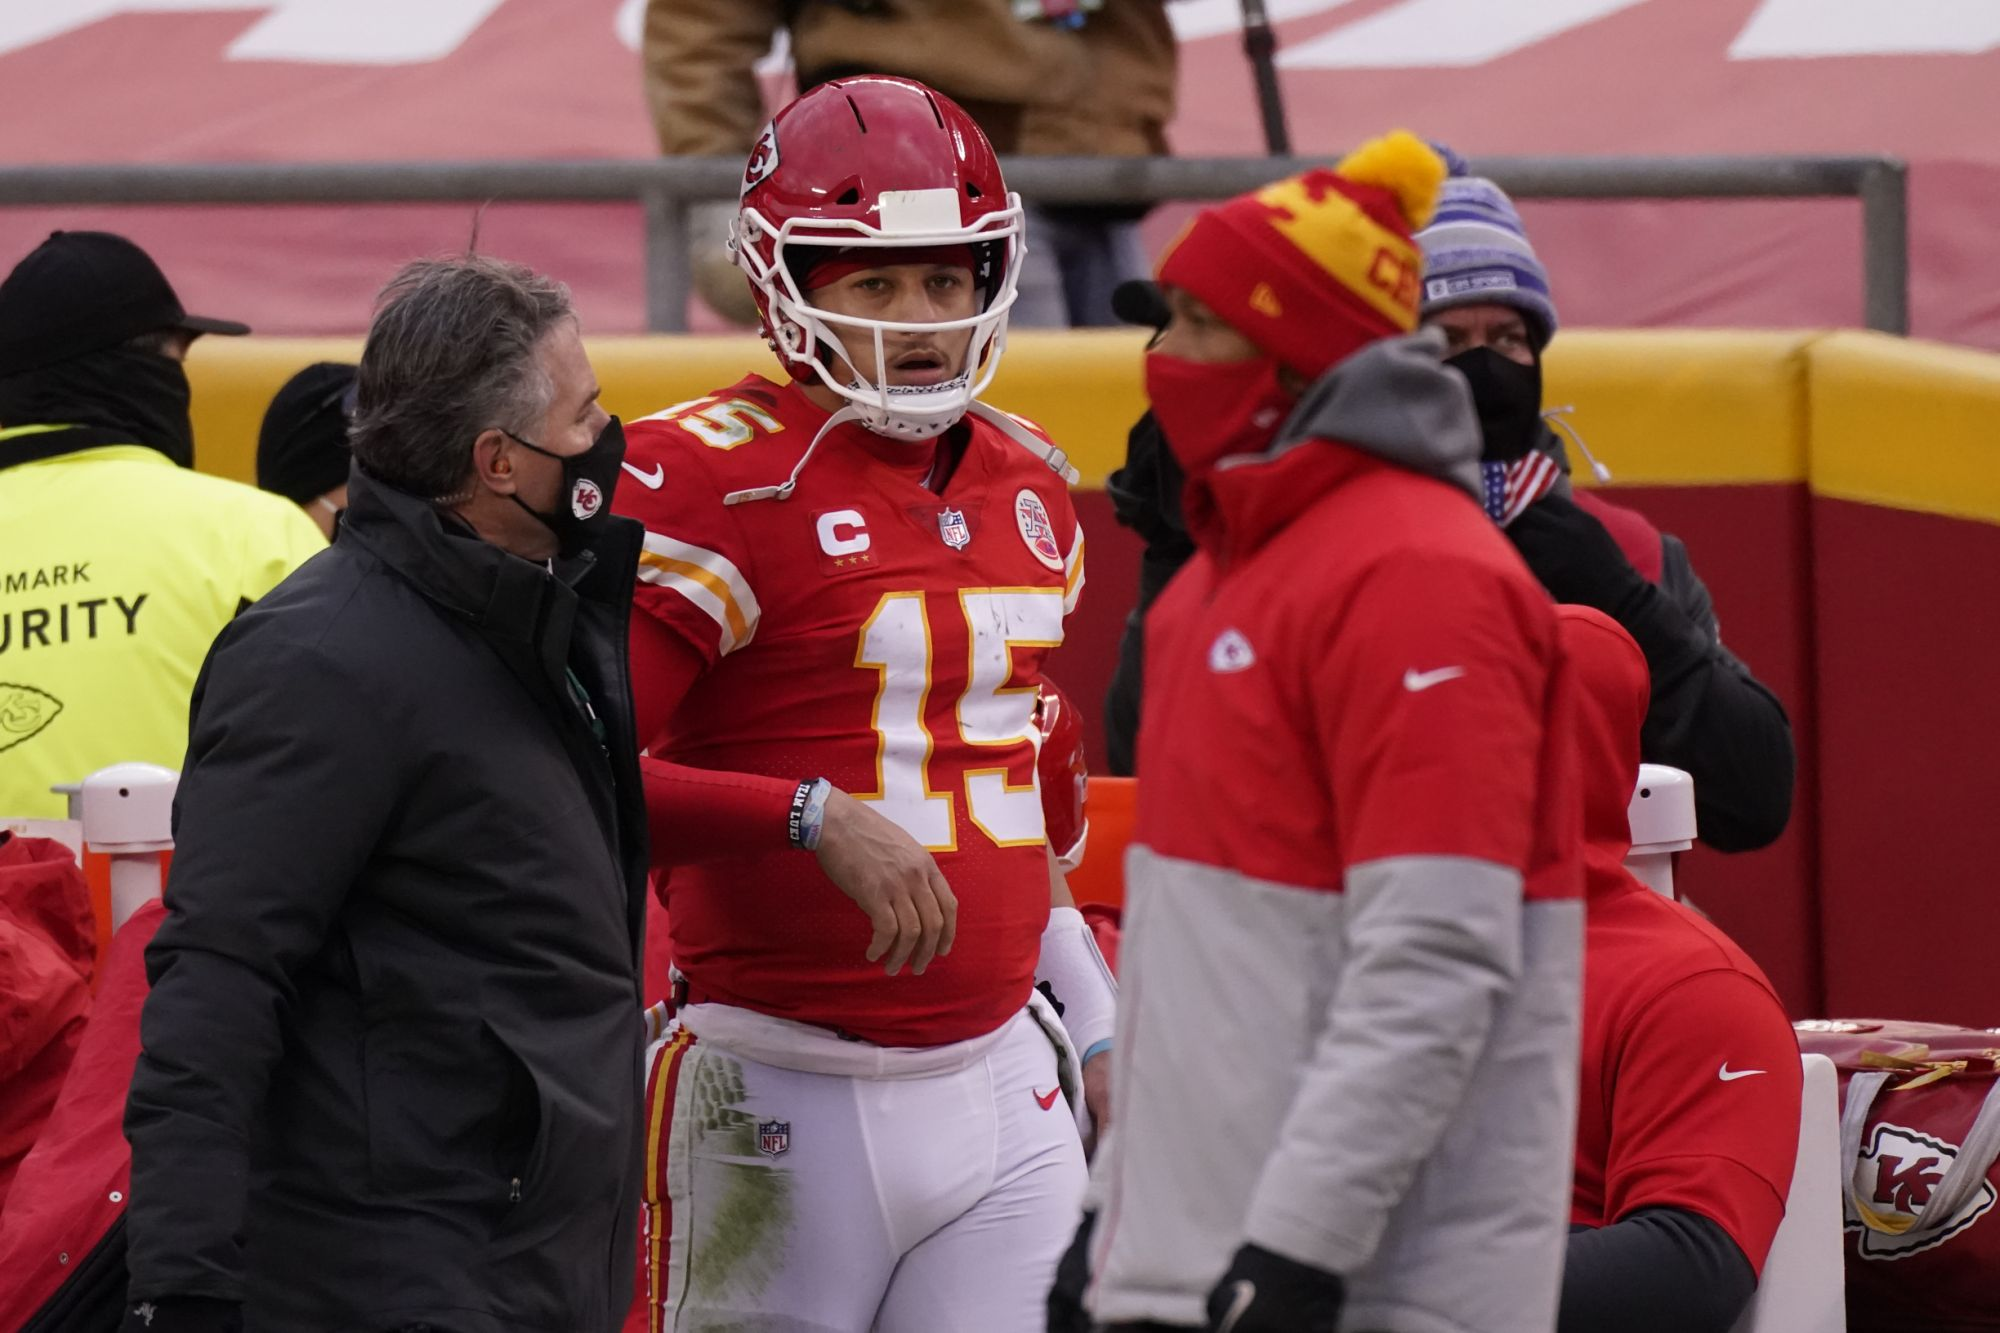 Chiefs' Super Bowl chances flashed before eyes with Mahomes injury